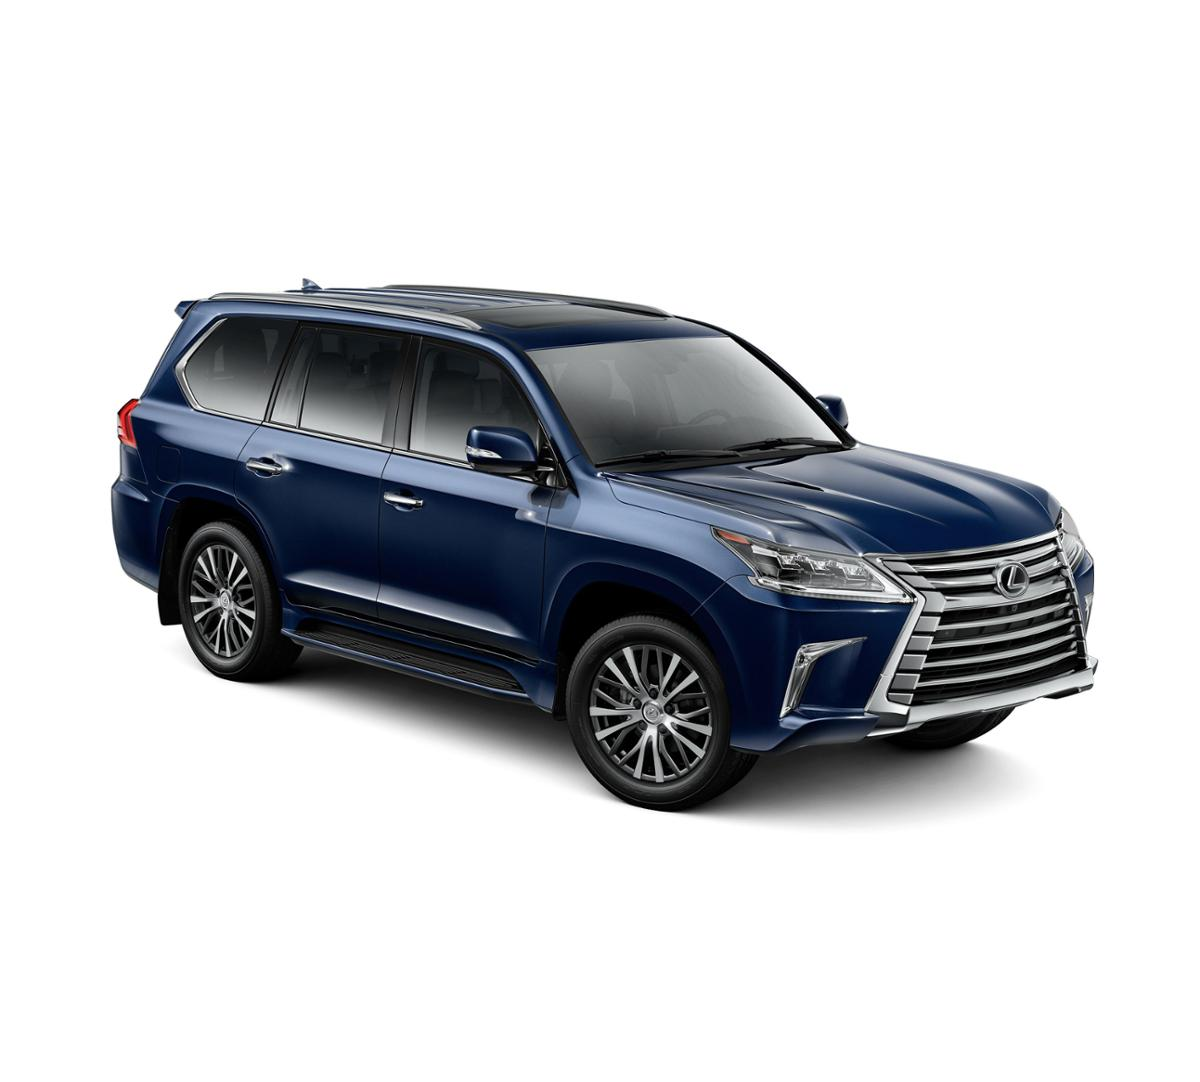 2017 lexus lx 570 for sale in farmingdale 170386. Black Bedroom Furniture Sets. Home Design Ideas